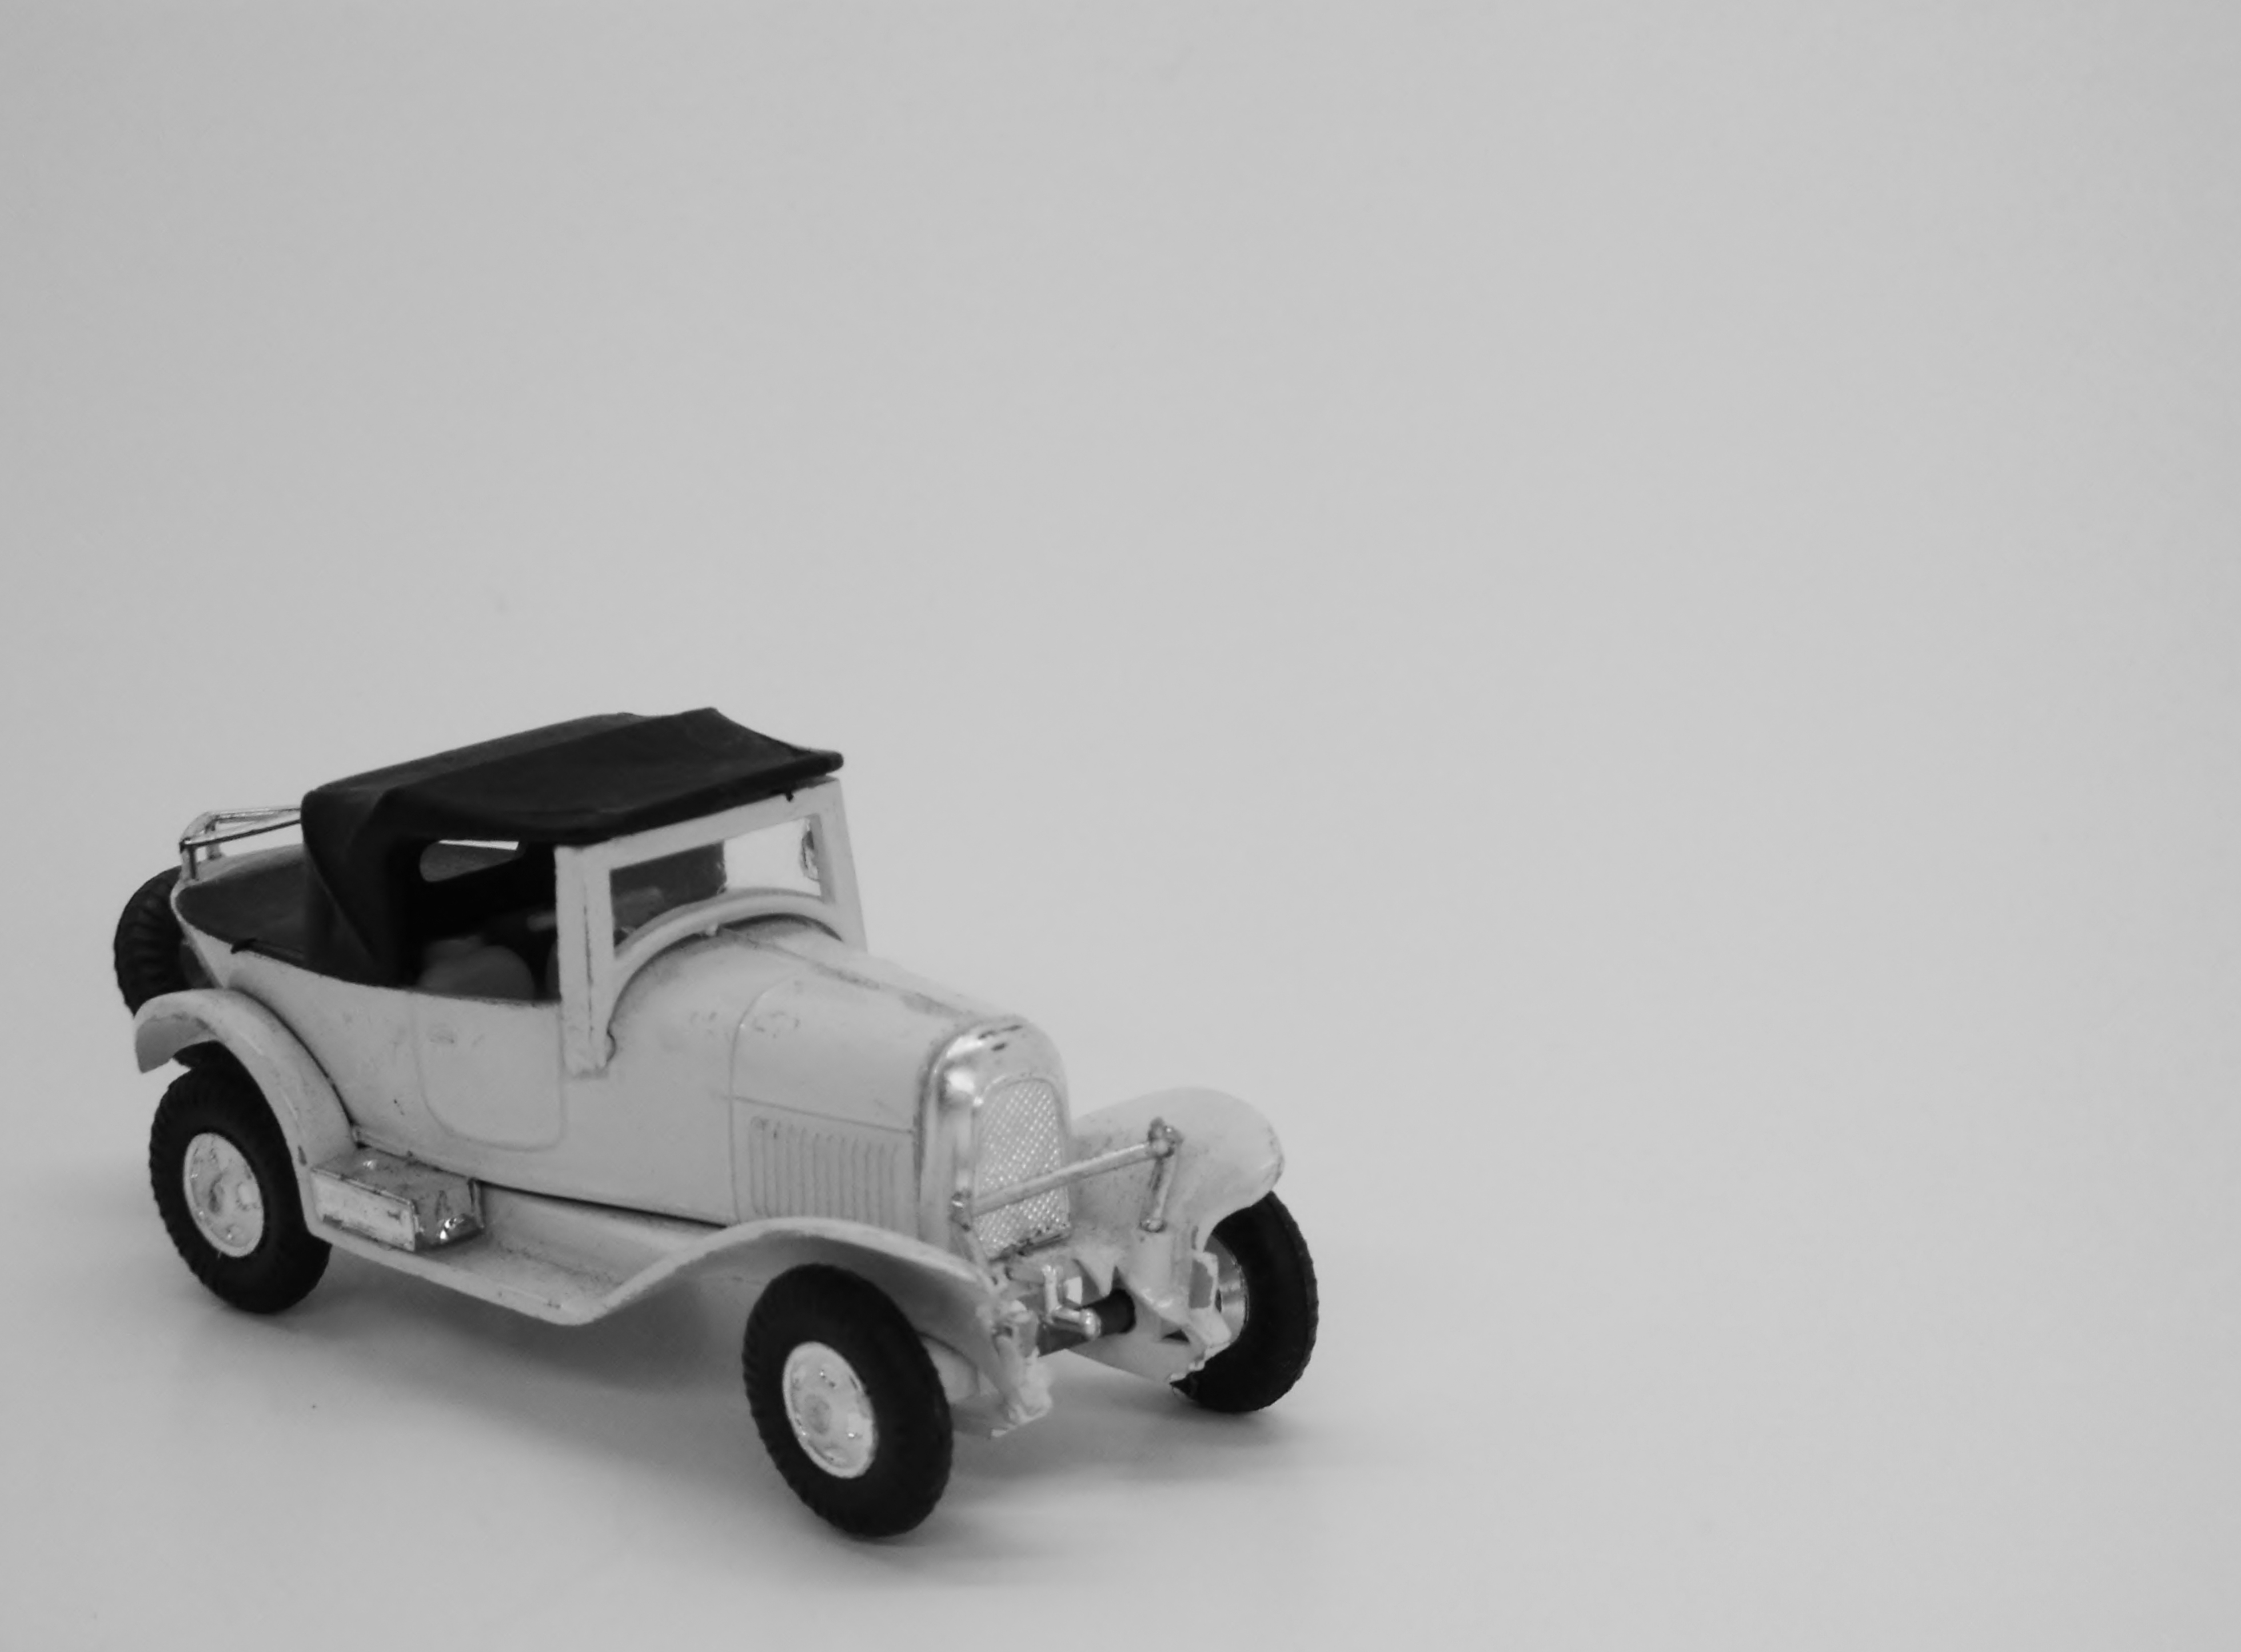 Vintage toy automobile - black and white photo